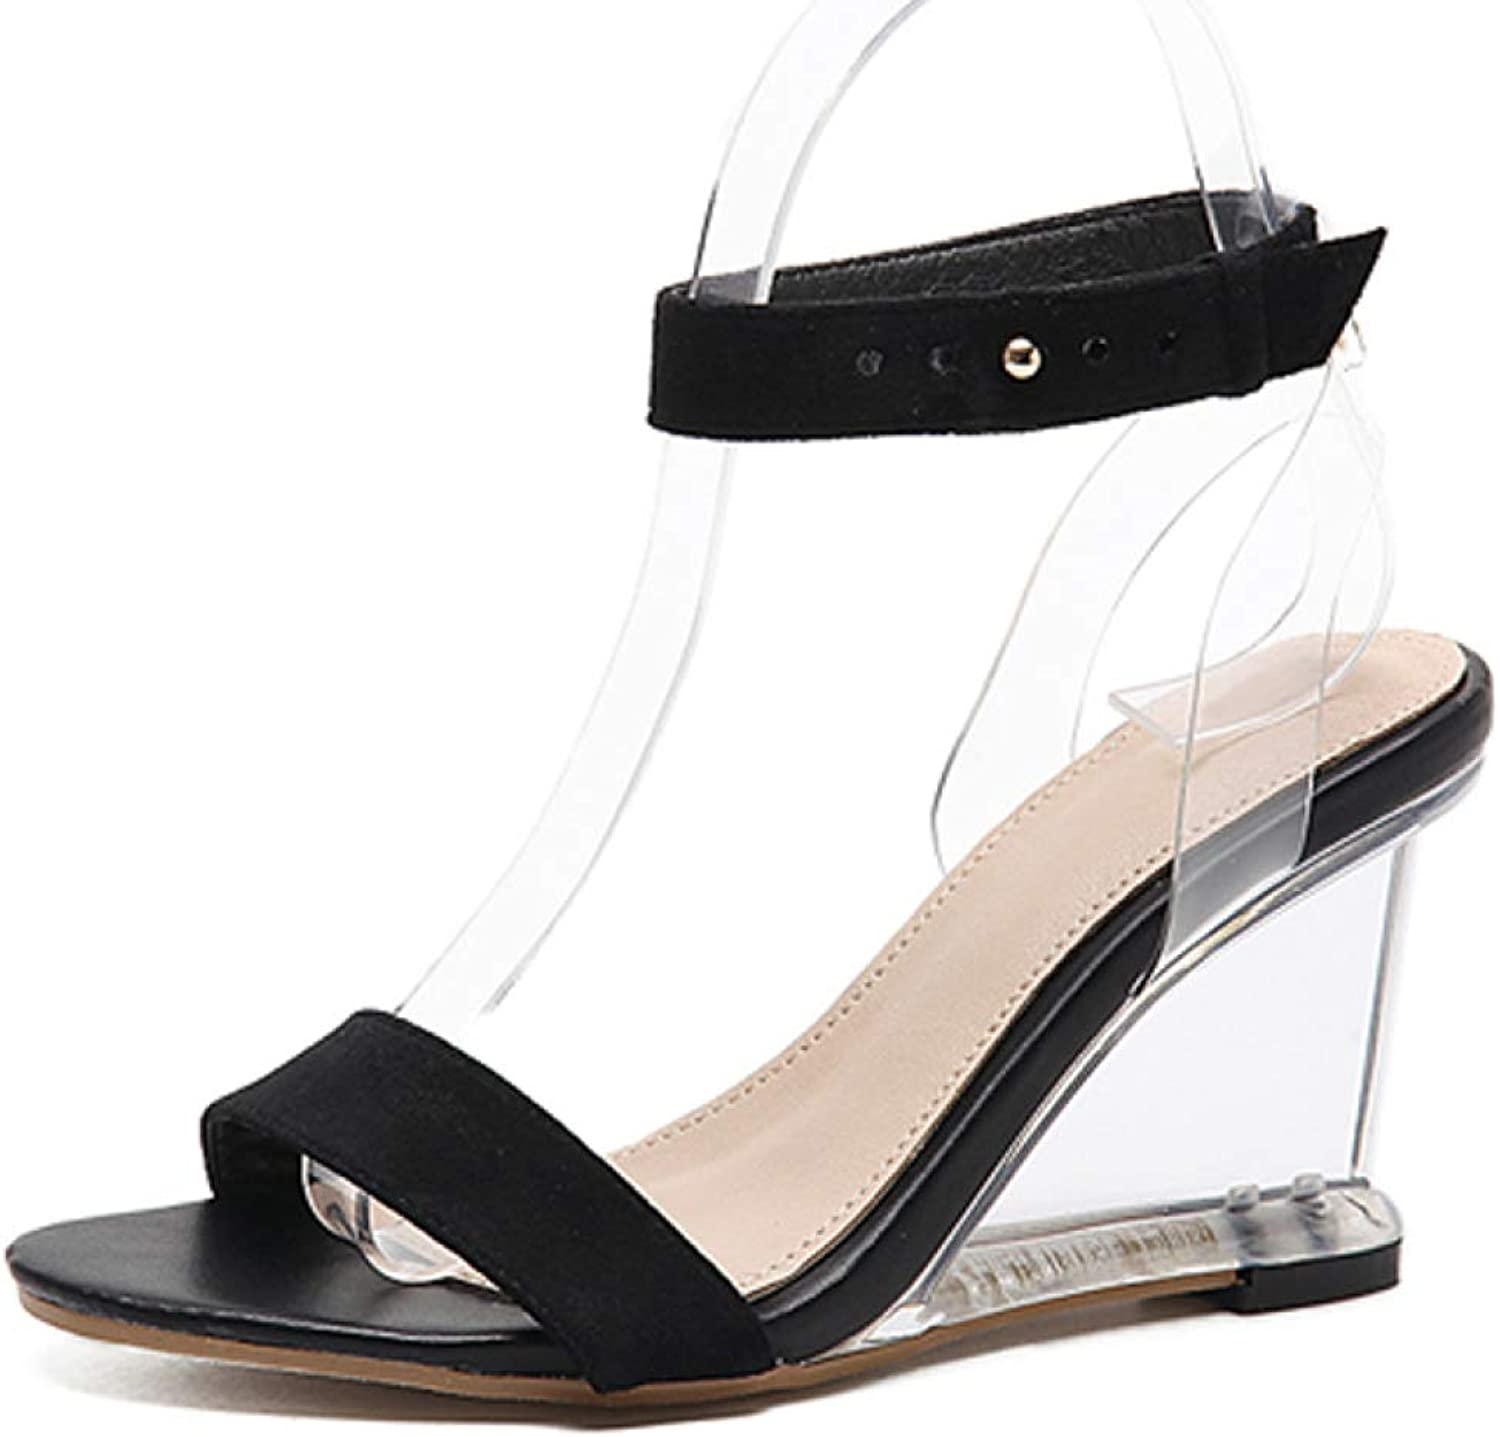 T-JULY Sandals Open Toe High Heels Women Transparent Perspex Slippers shoes Wedge Heel Clear Sandals